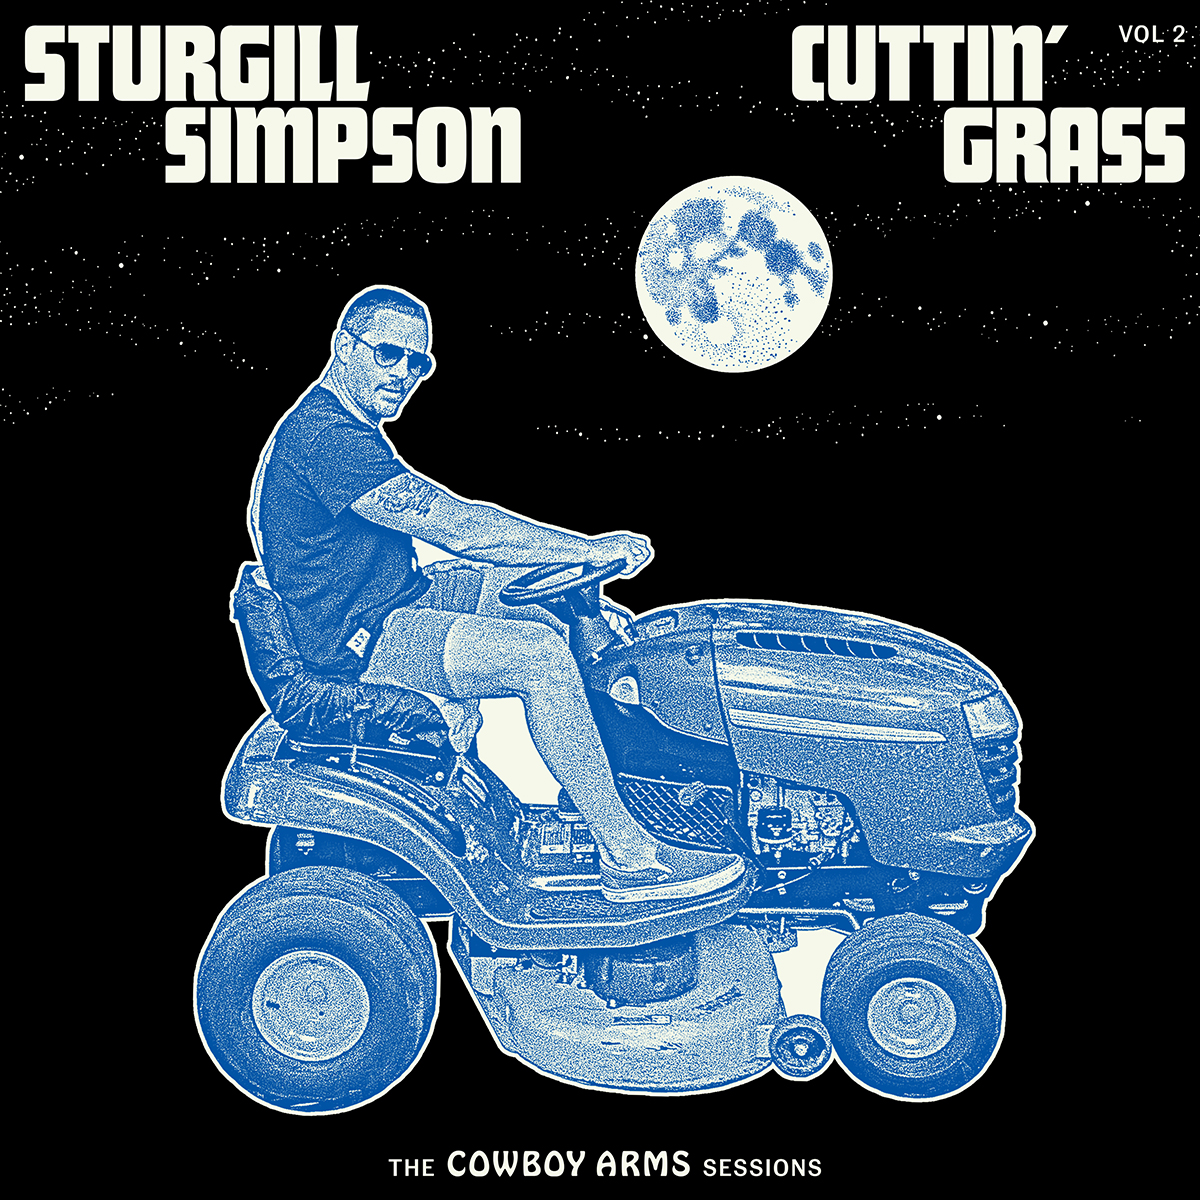 """Cuttin' Grass Vol. 2 """"The Cowboy Arms Sessions"""" Digital Download"""